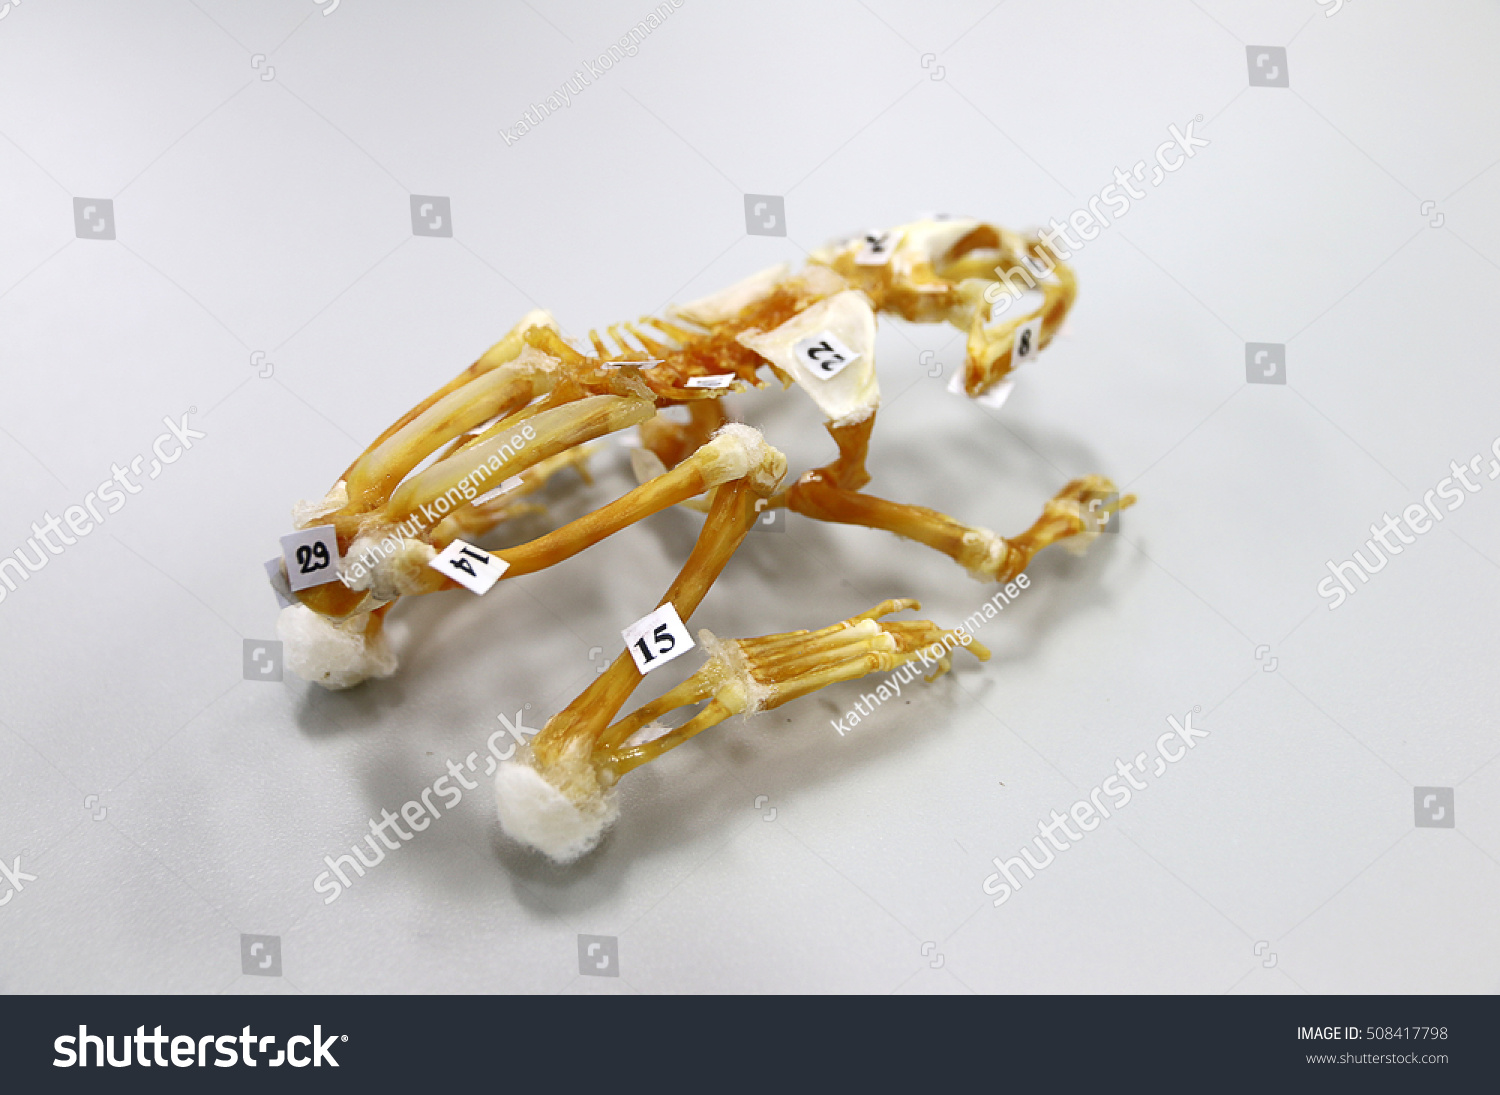 Frog Bone Comparative Anatomy Dissection Biology Stock Photo (100 ...